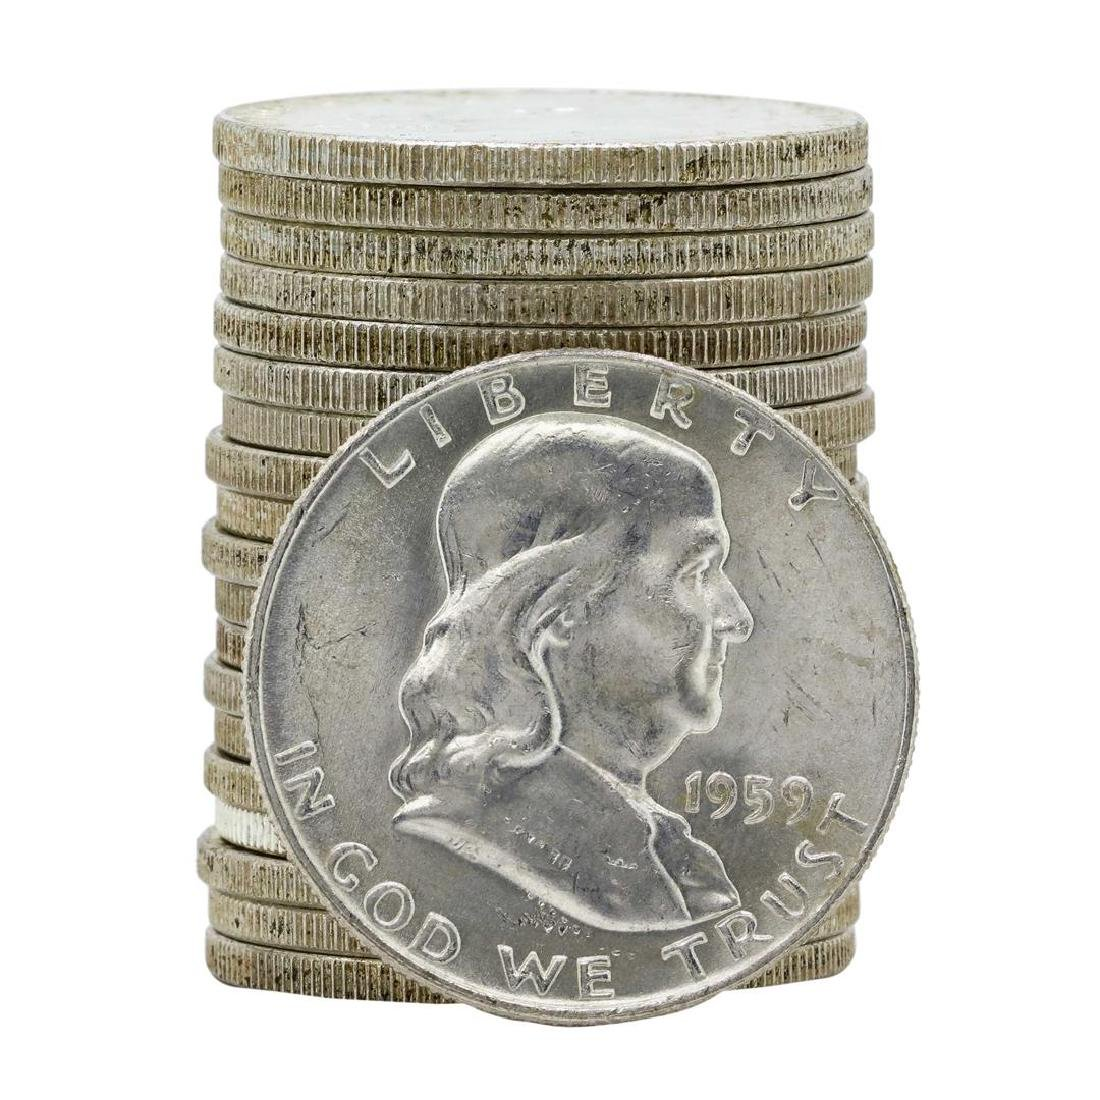 Roll of (20) 1959-D Brilliant Uncirculated Franklin